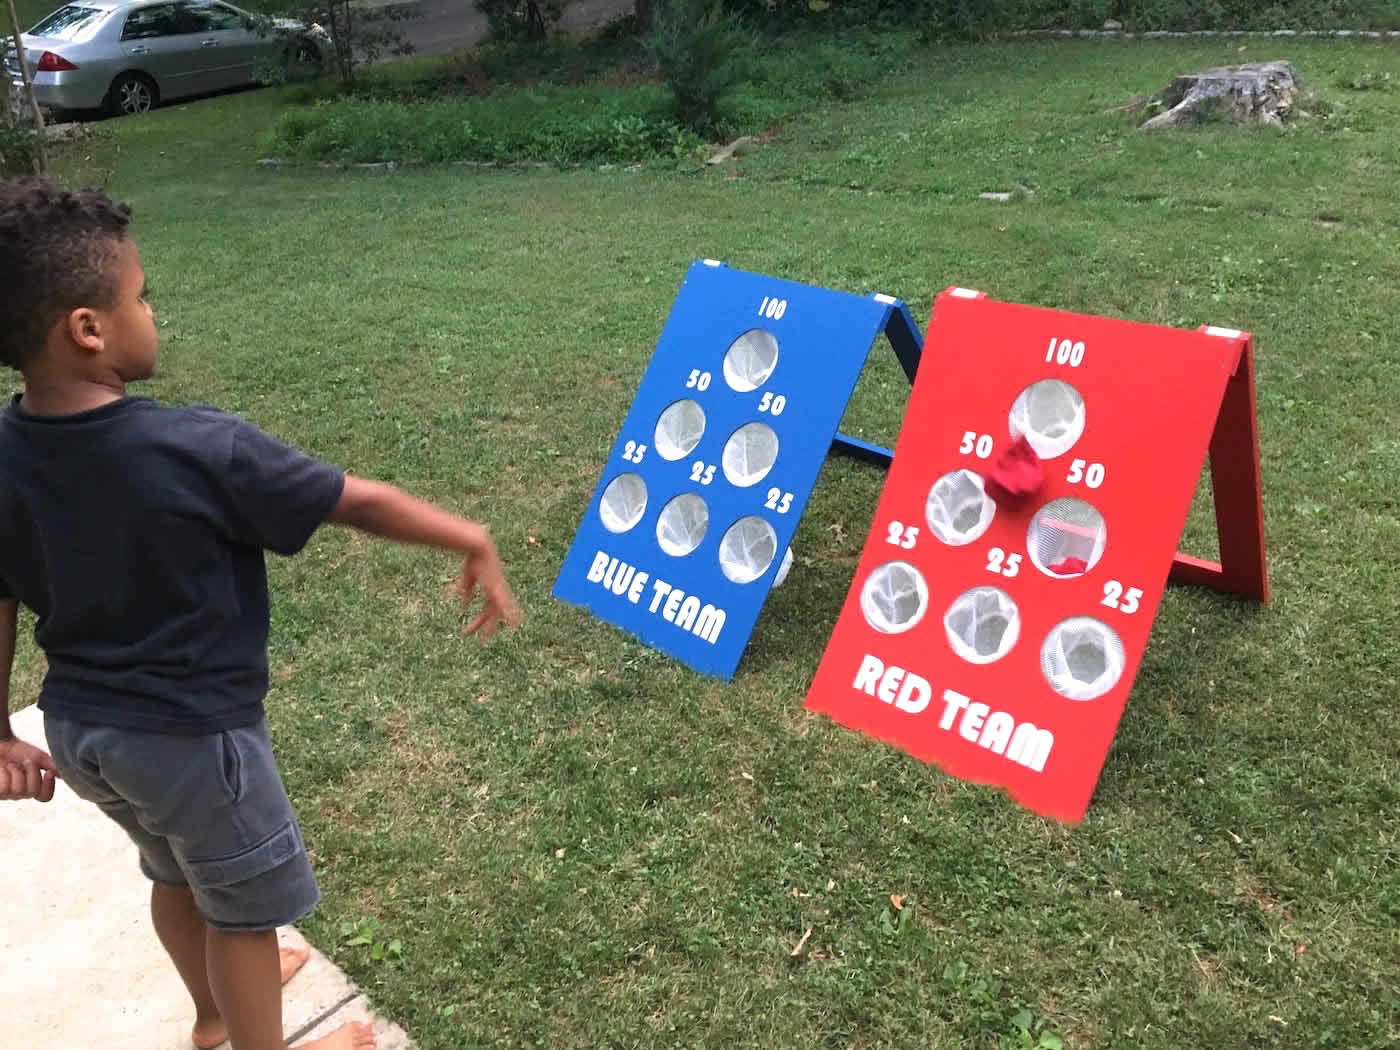 Make a Bean Bag Toss Game